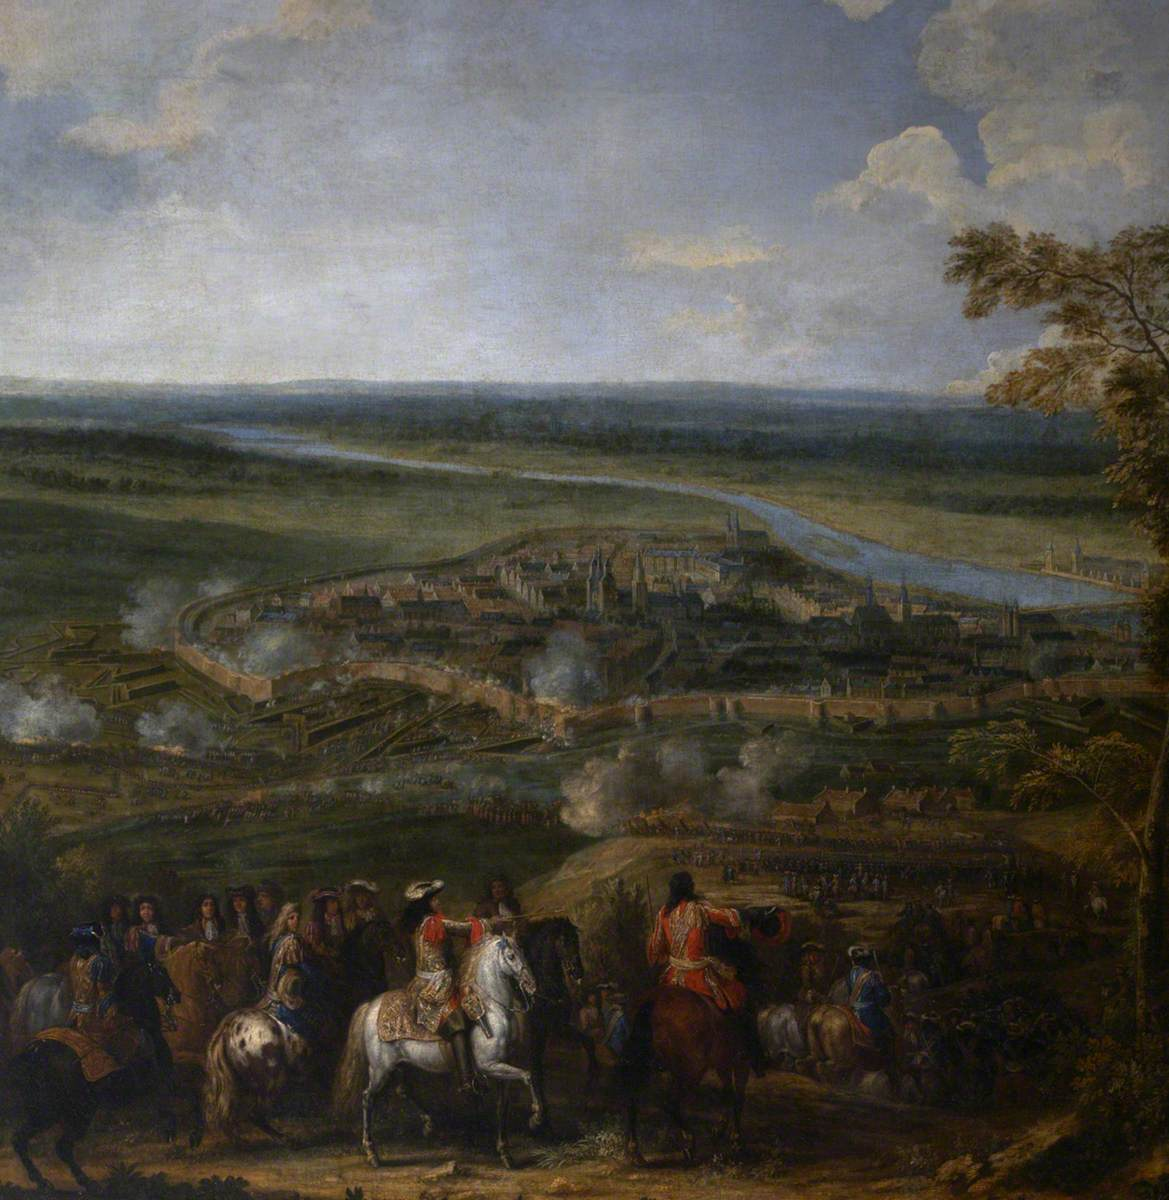 The Siege of Maastricht, 1673